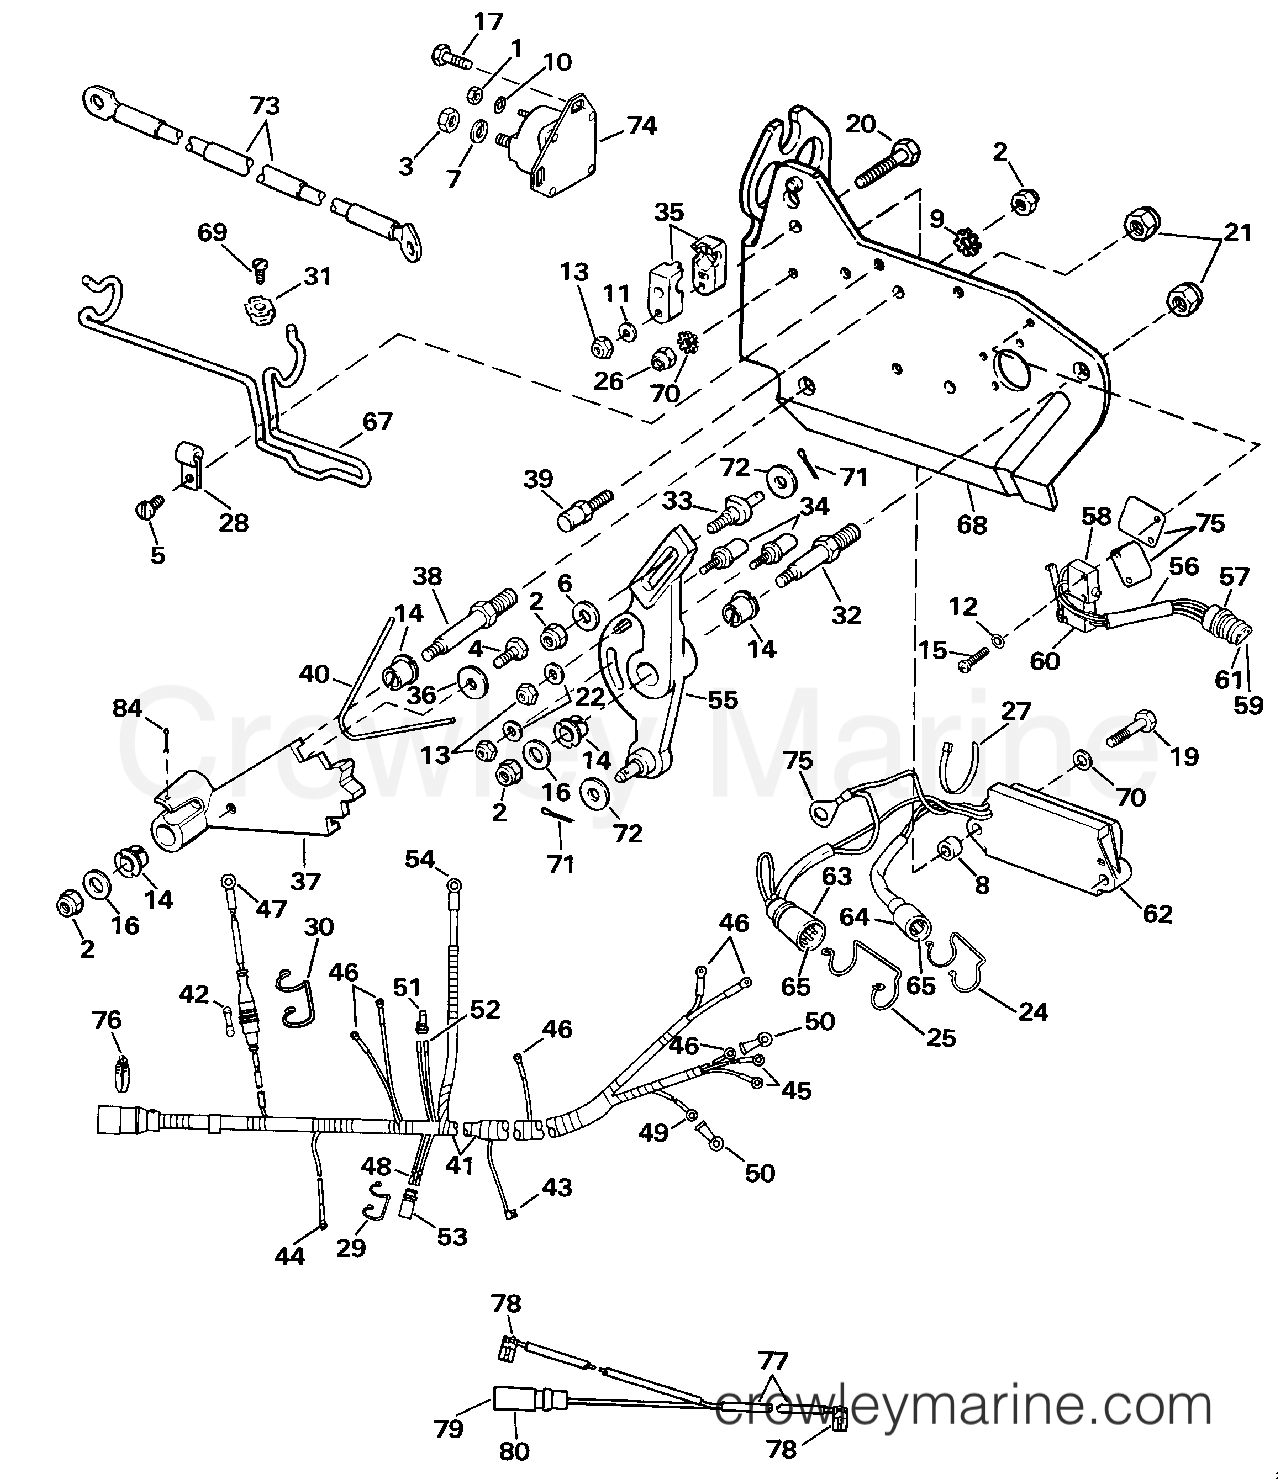 hight resolution of 1989 omc stern drive 7 5 460amlmed wire harness bracket solenoid section